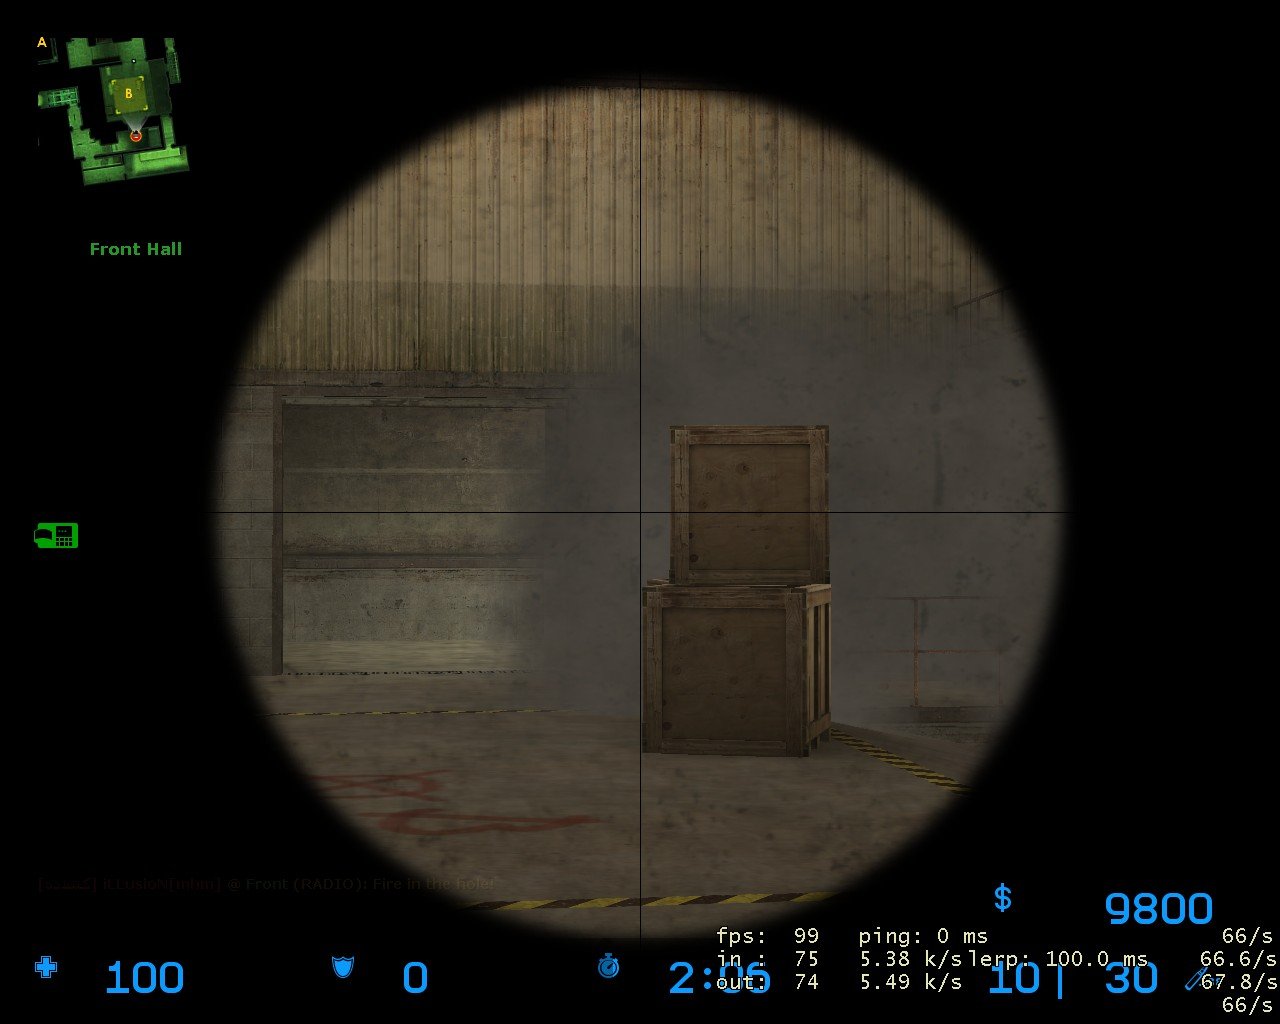 Ian's friend prime-de_season-lower-smoke-window-effect-1-jpg